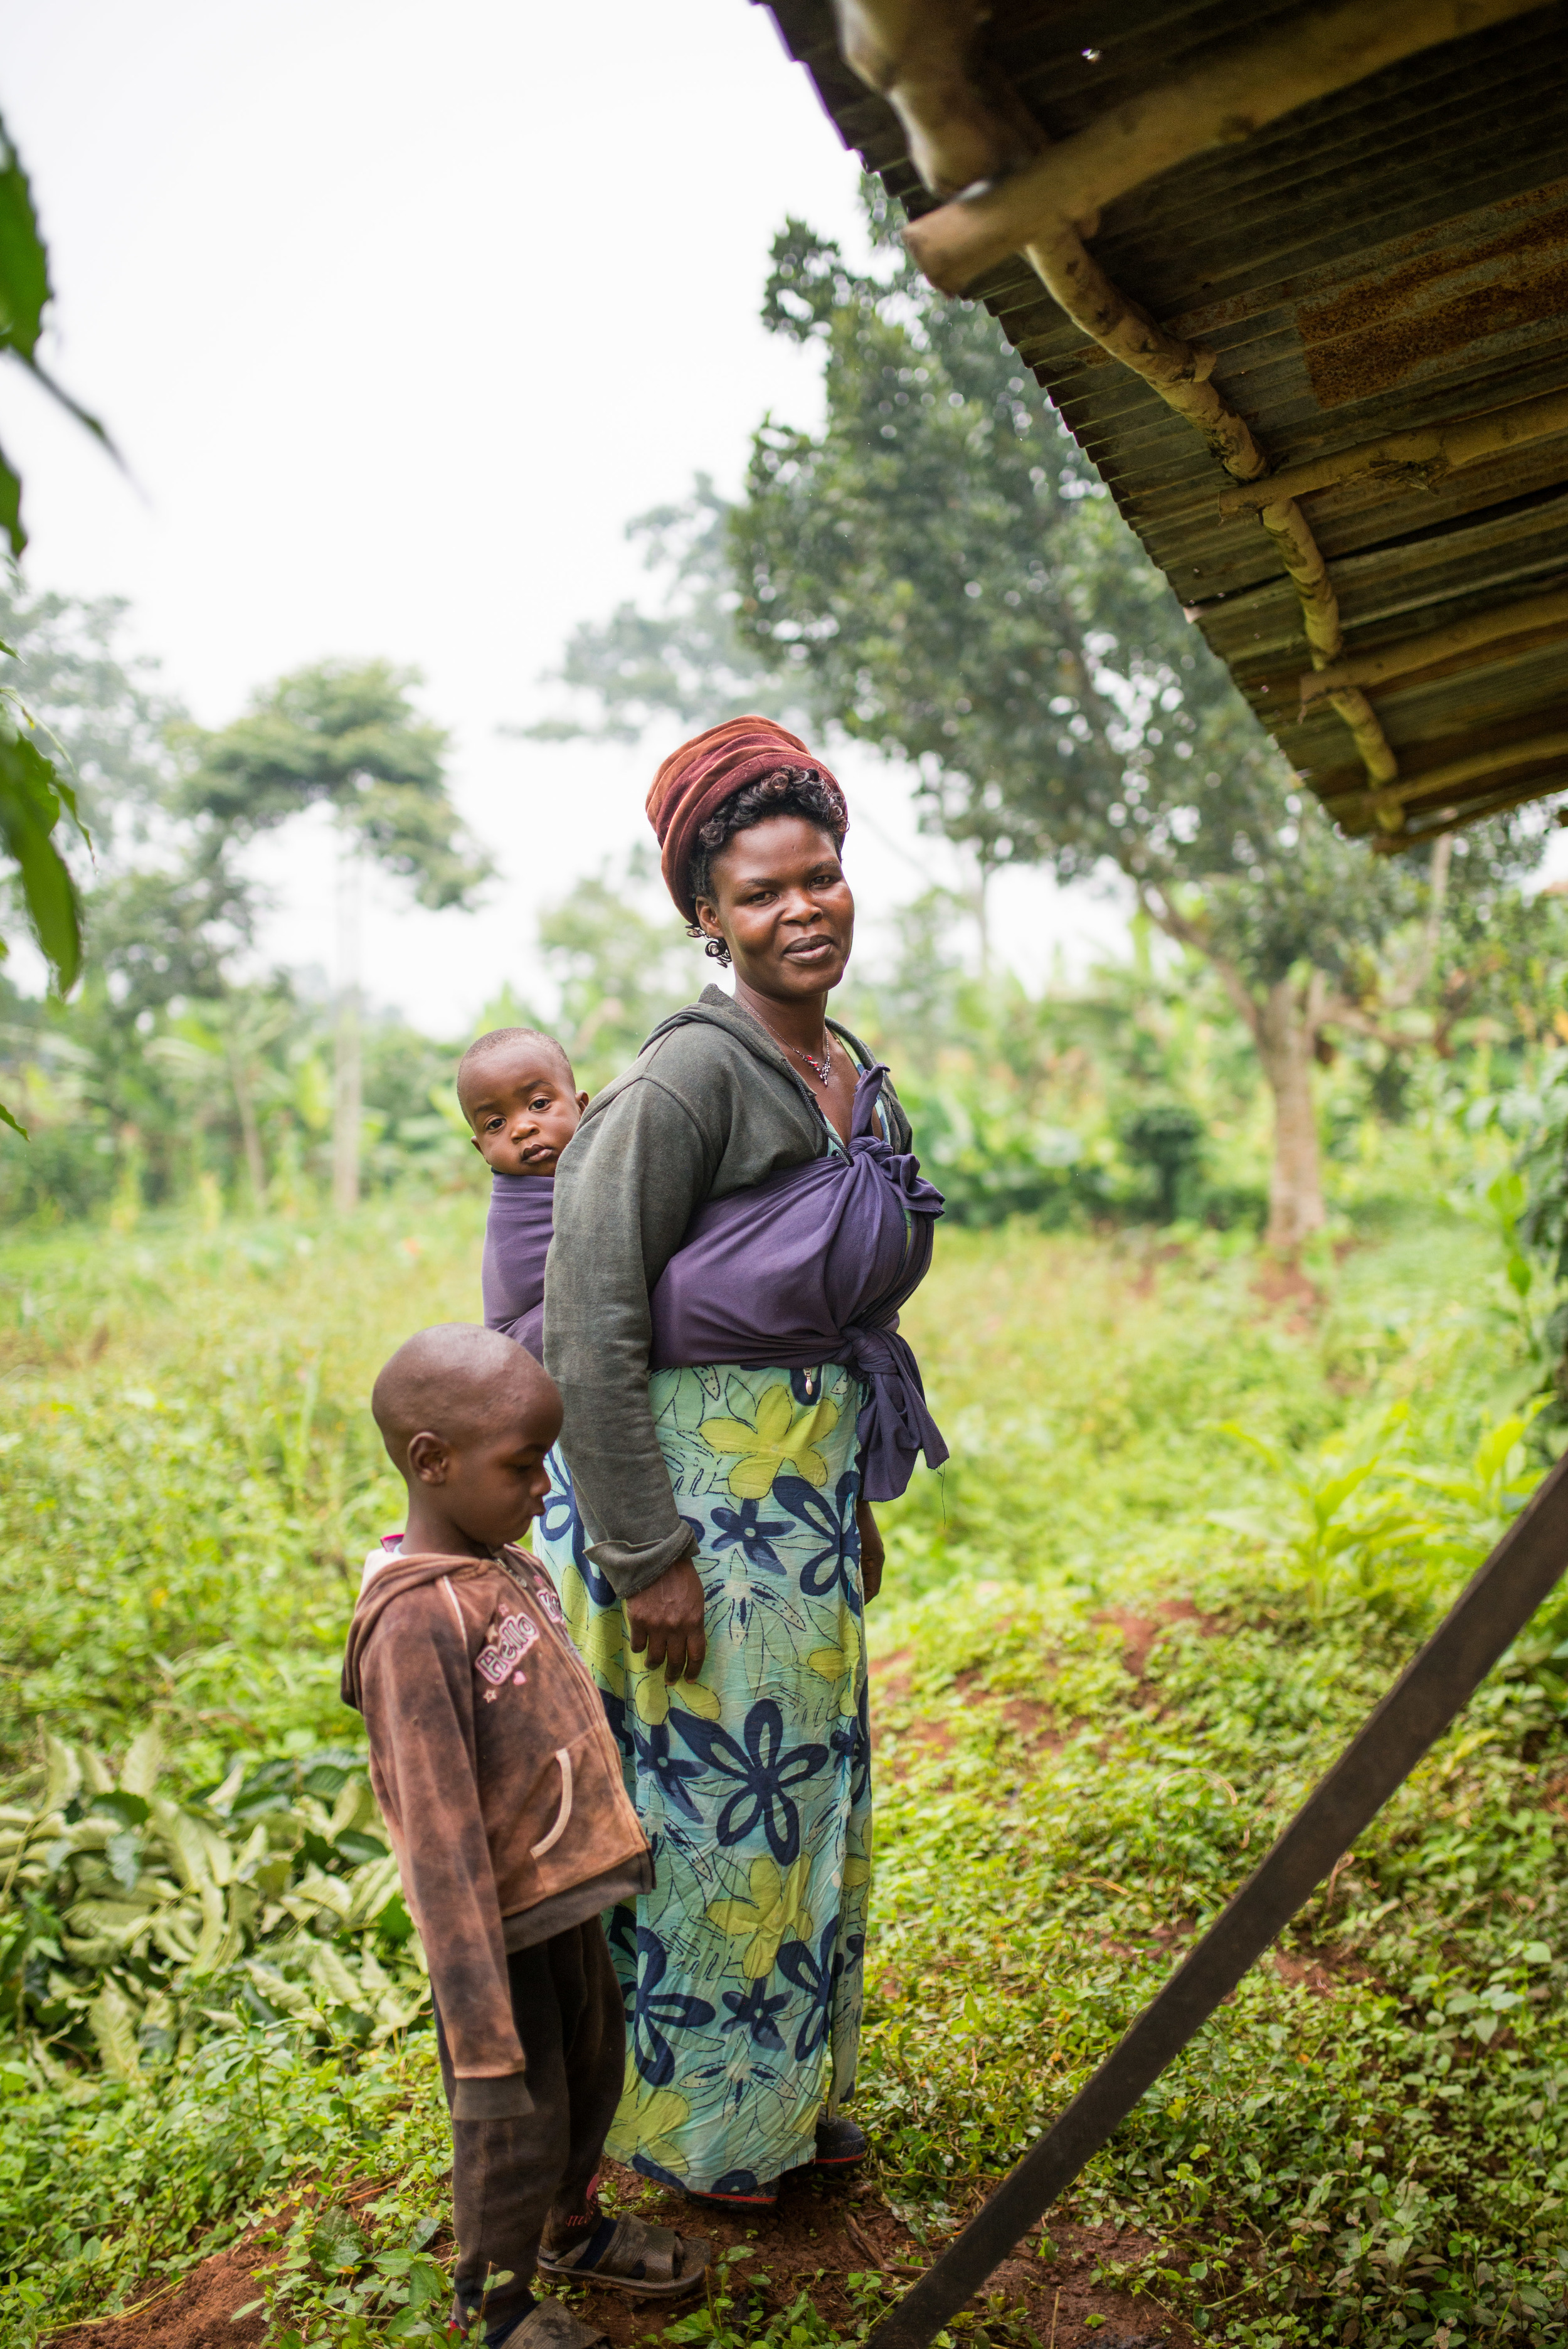 Cissy, mother of 6, will be one of the beneficients of this well. Along with mothering, Cissy oversees our animal husbandry project.